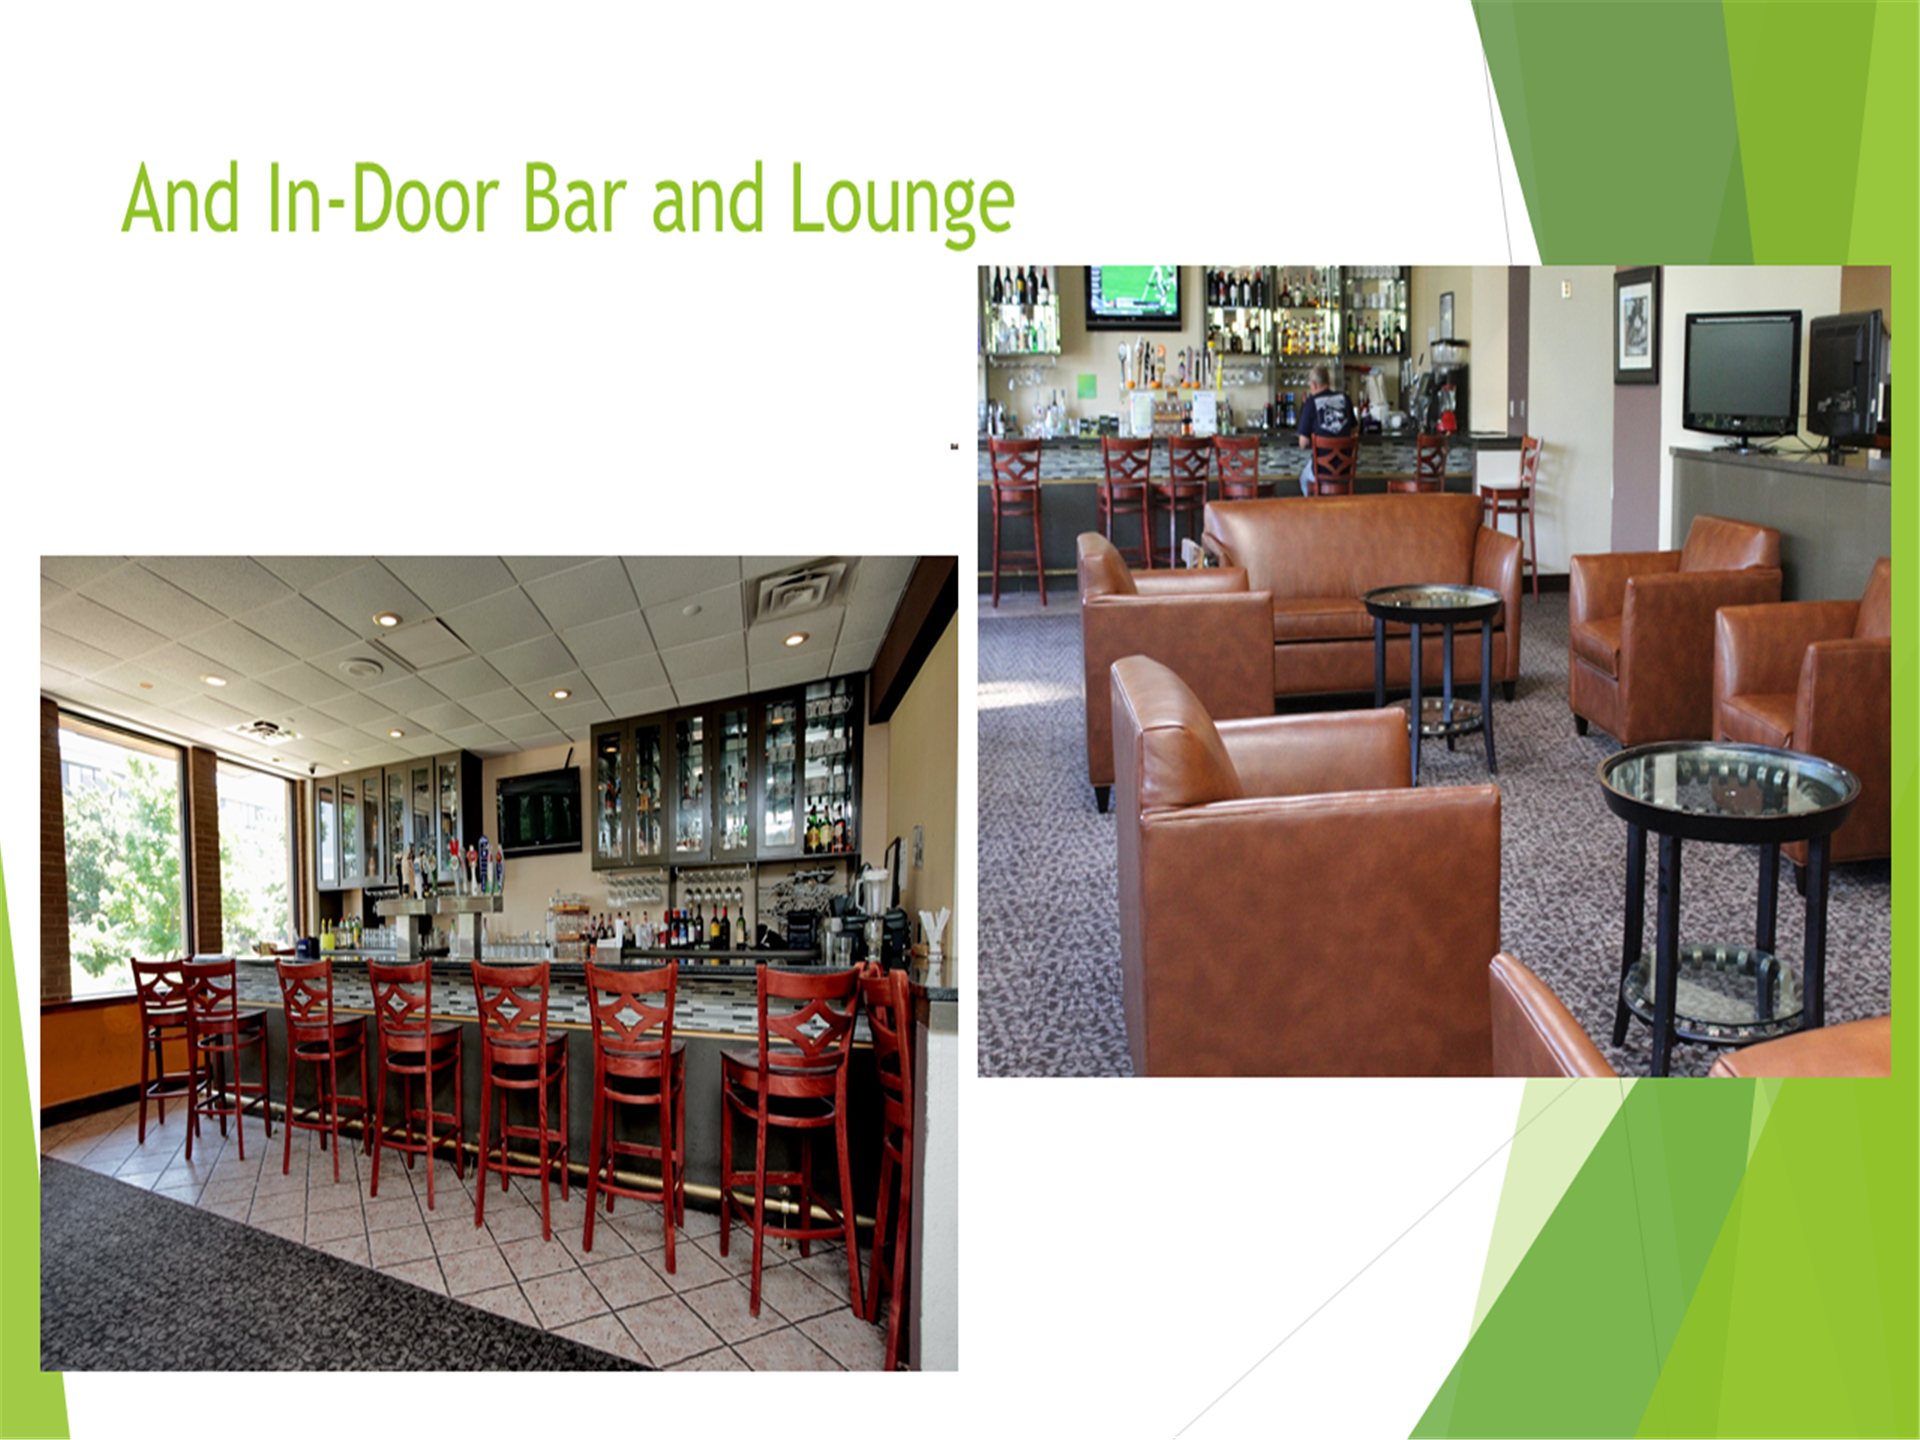 And and in-door bar and lounge... two images of the in-door bar and lounge area